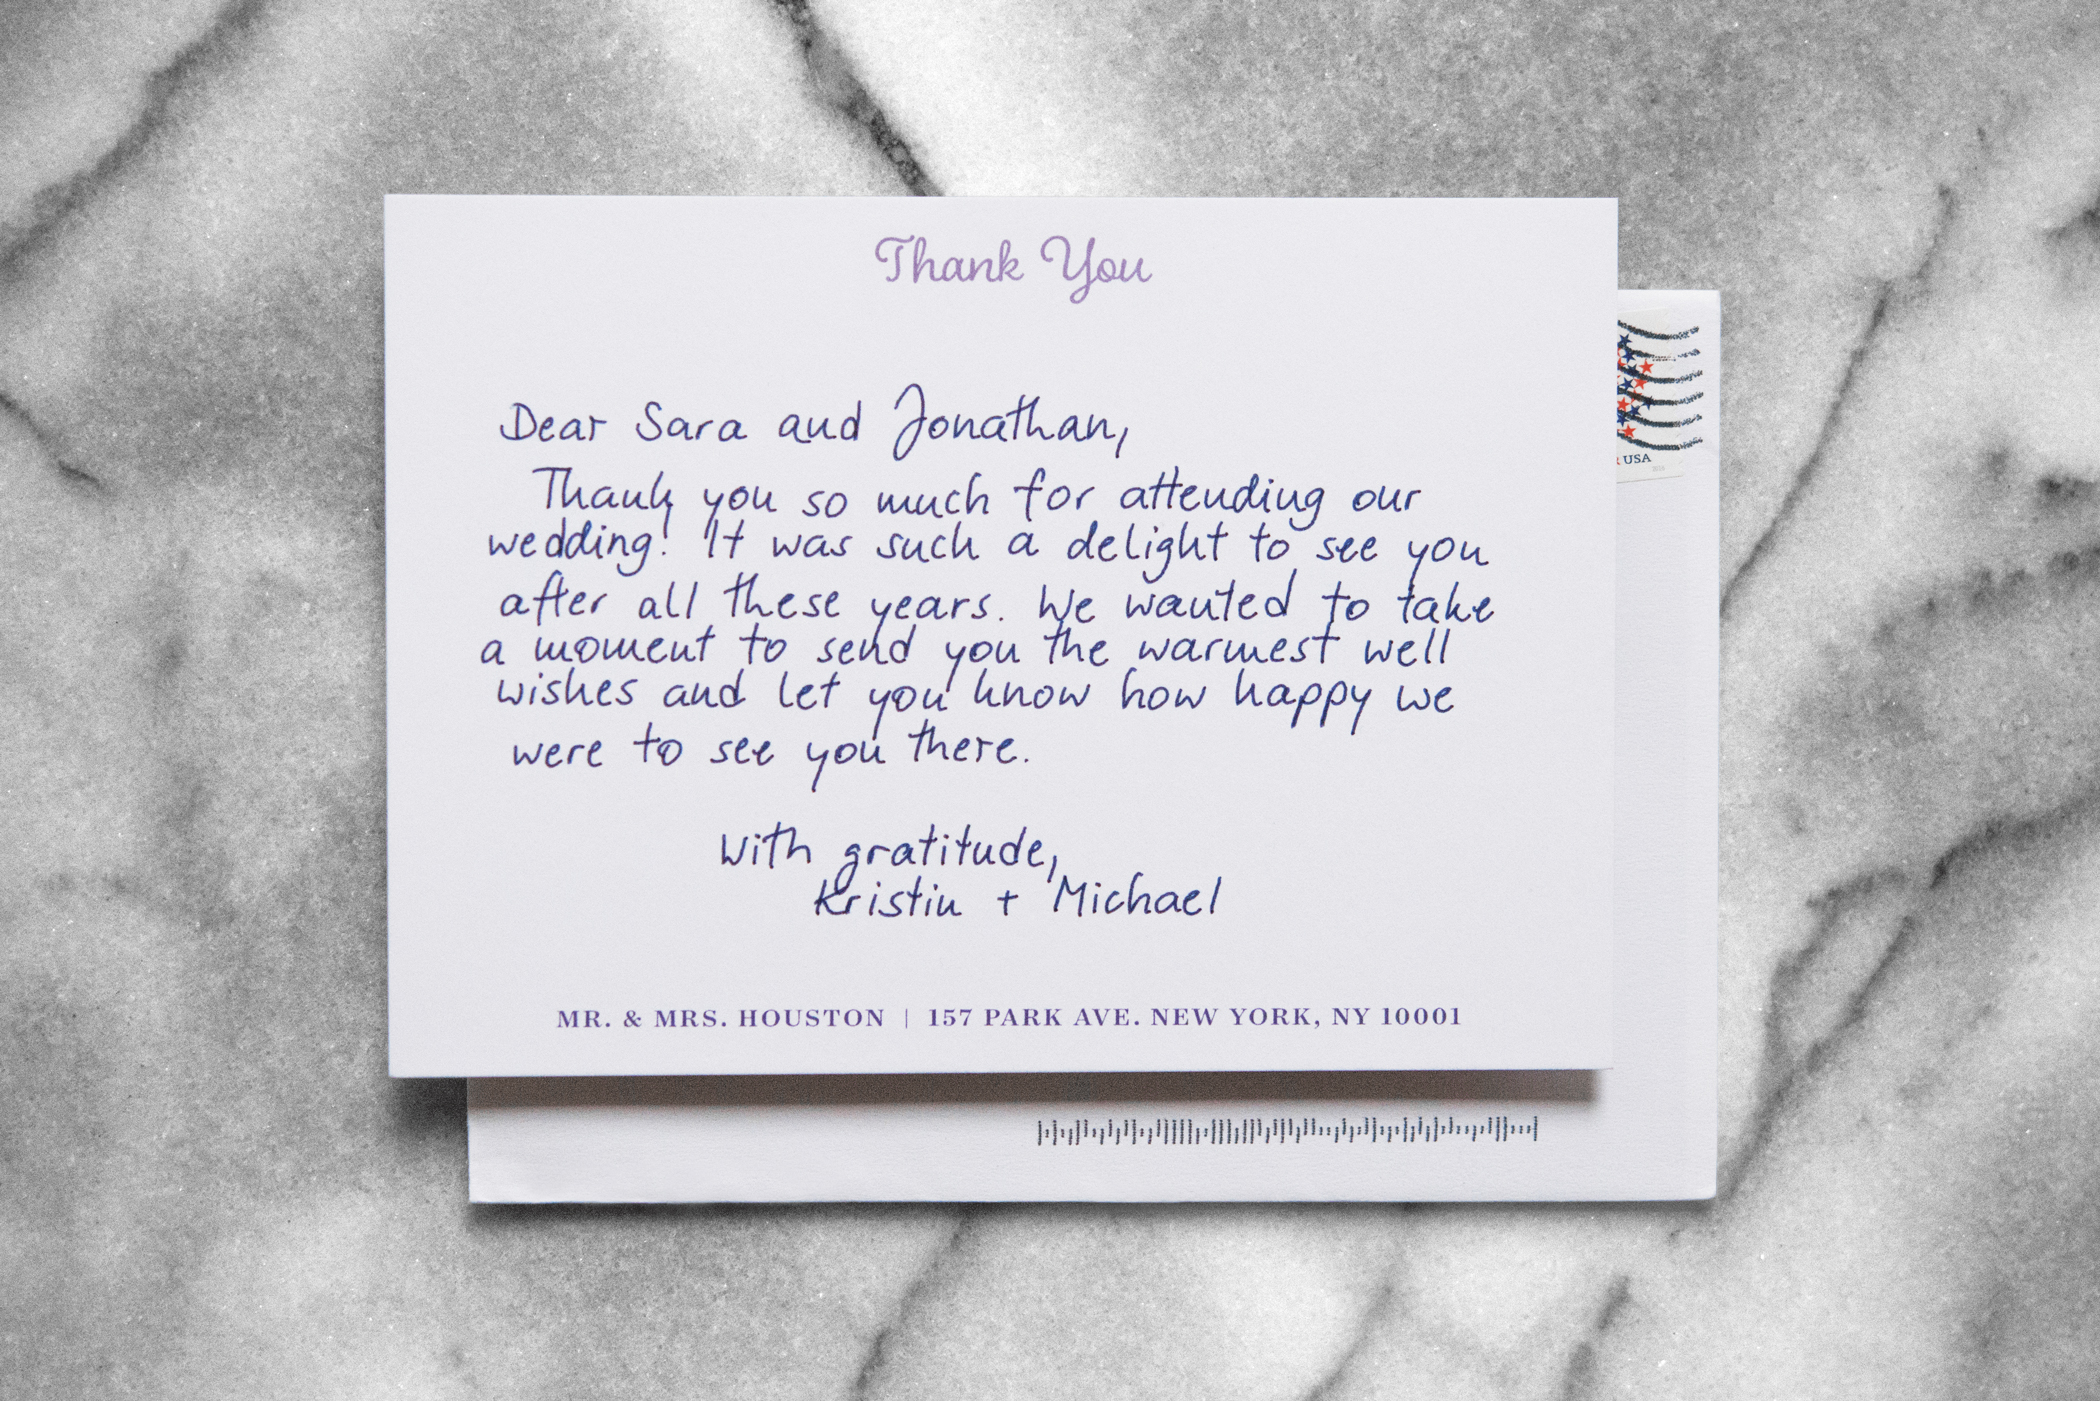 Personalize your wedding correspondence with Bond.co